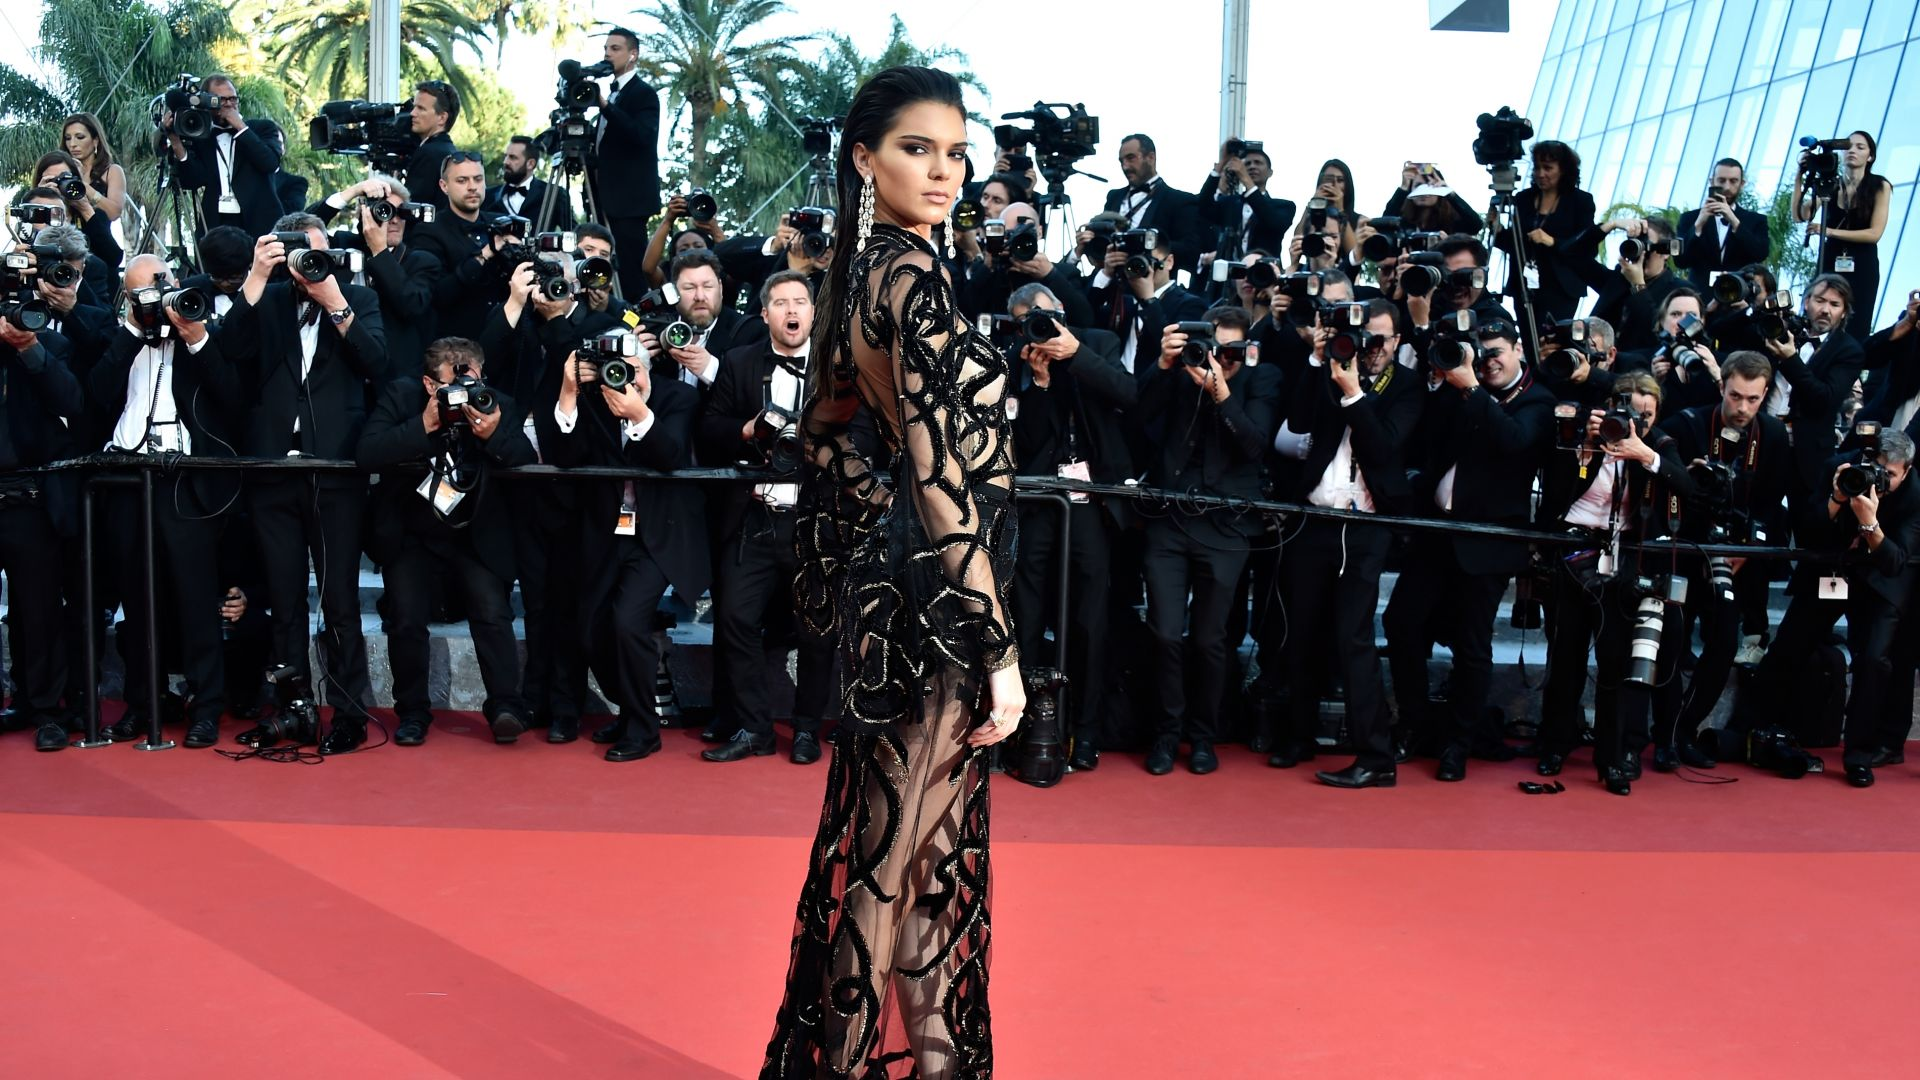 Kendall Jenner, Cannes Film Festival 2016, red carpet (horizontal)